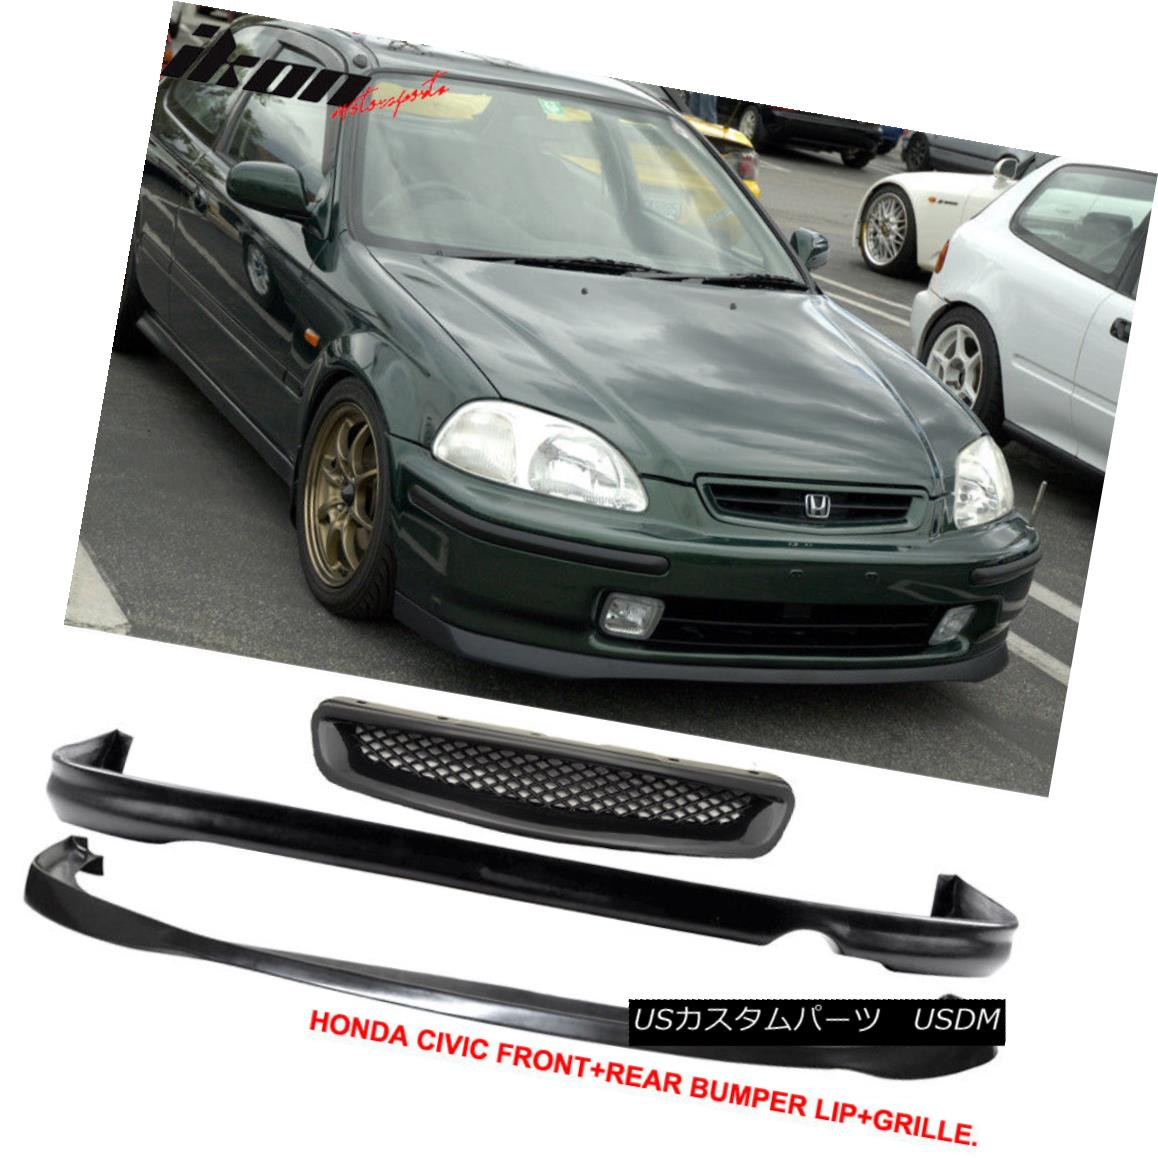 USグリル Fits 96-98 Honda Civic 2Dr/4Dr SIR Front + Rear Bumper Lip + TR Front Hood Grill フィット96-98ホンダシビック2Dr / 4Dr SIRフロント+リアバンパーリップ+ TRフロントフードグリル